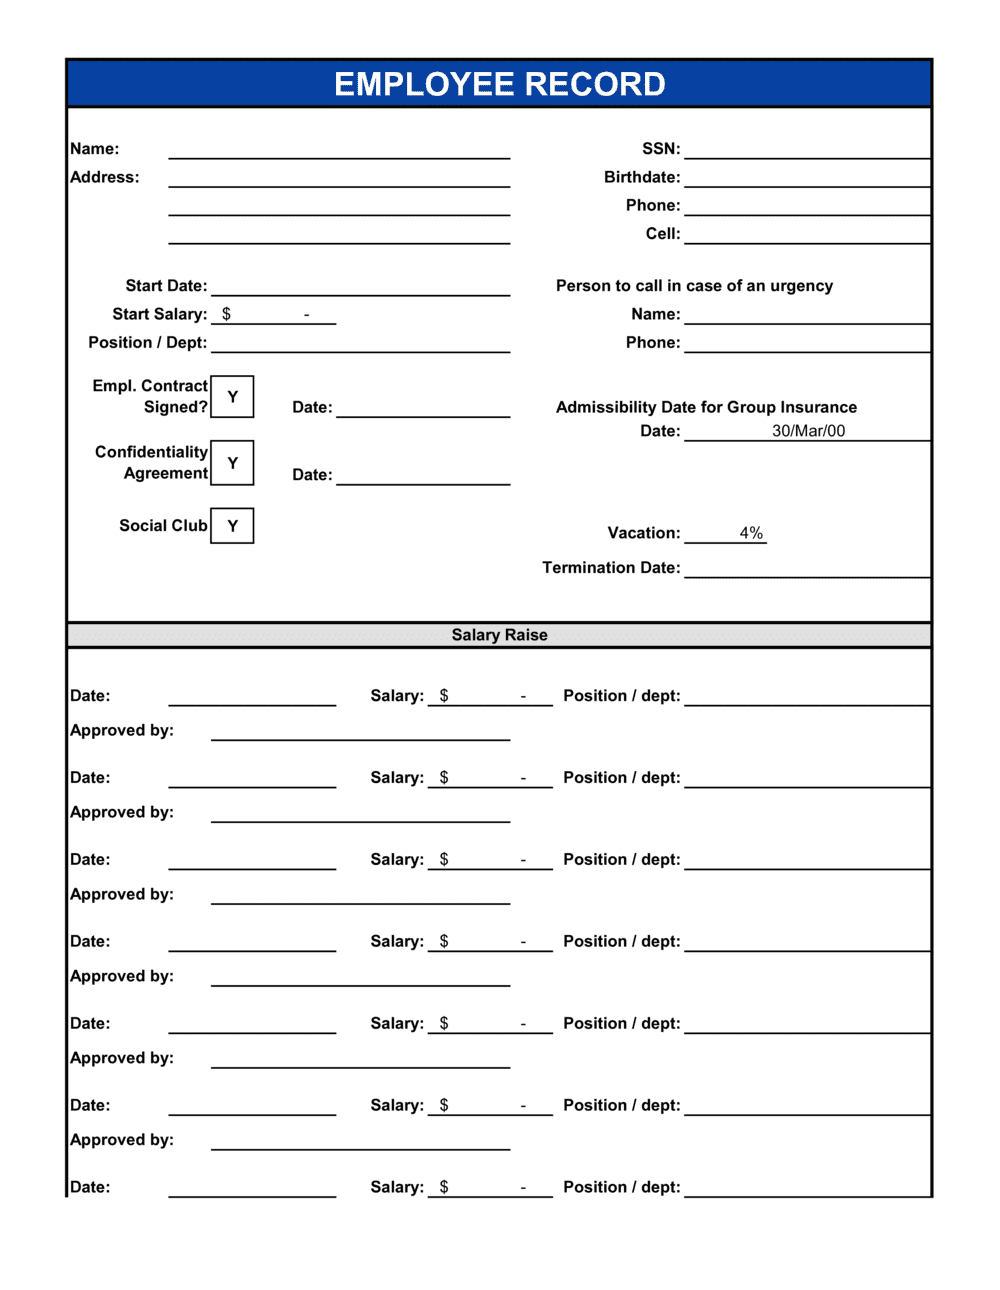 Business-in-a-Box's Employee Records Template